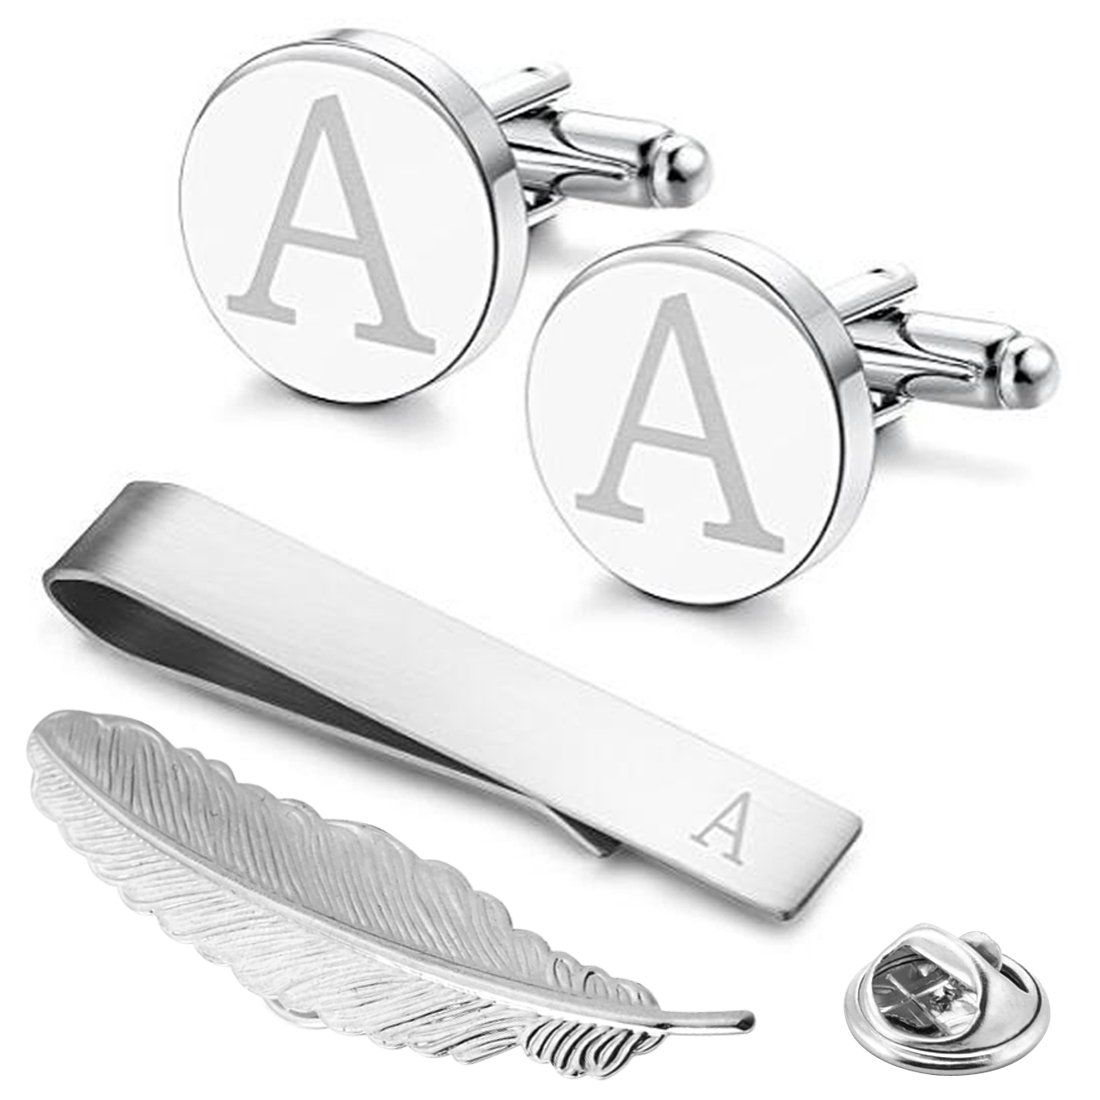 GGemony Men's Shirt Cufflinks 2PCS,Premium Quality Personalized Alphabet Letter A-Z (A-1laser/)